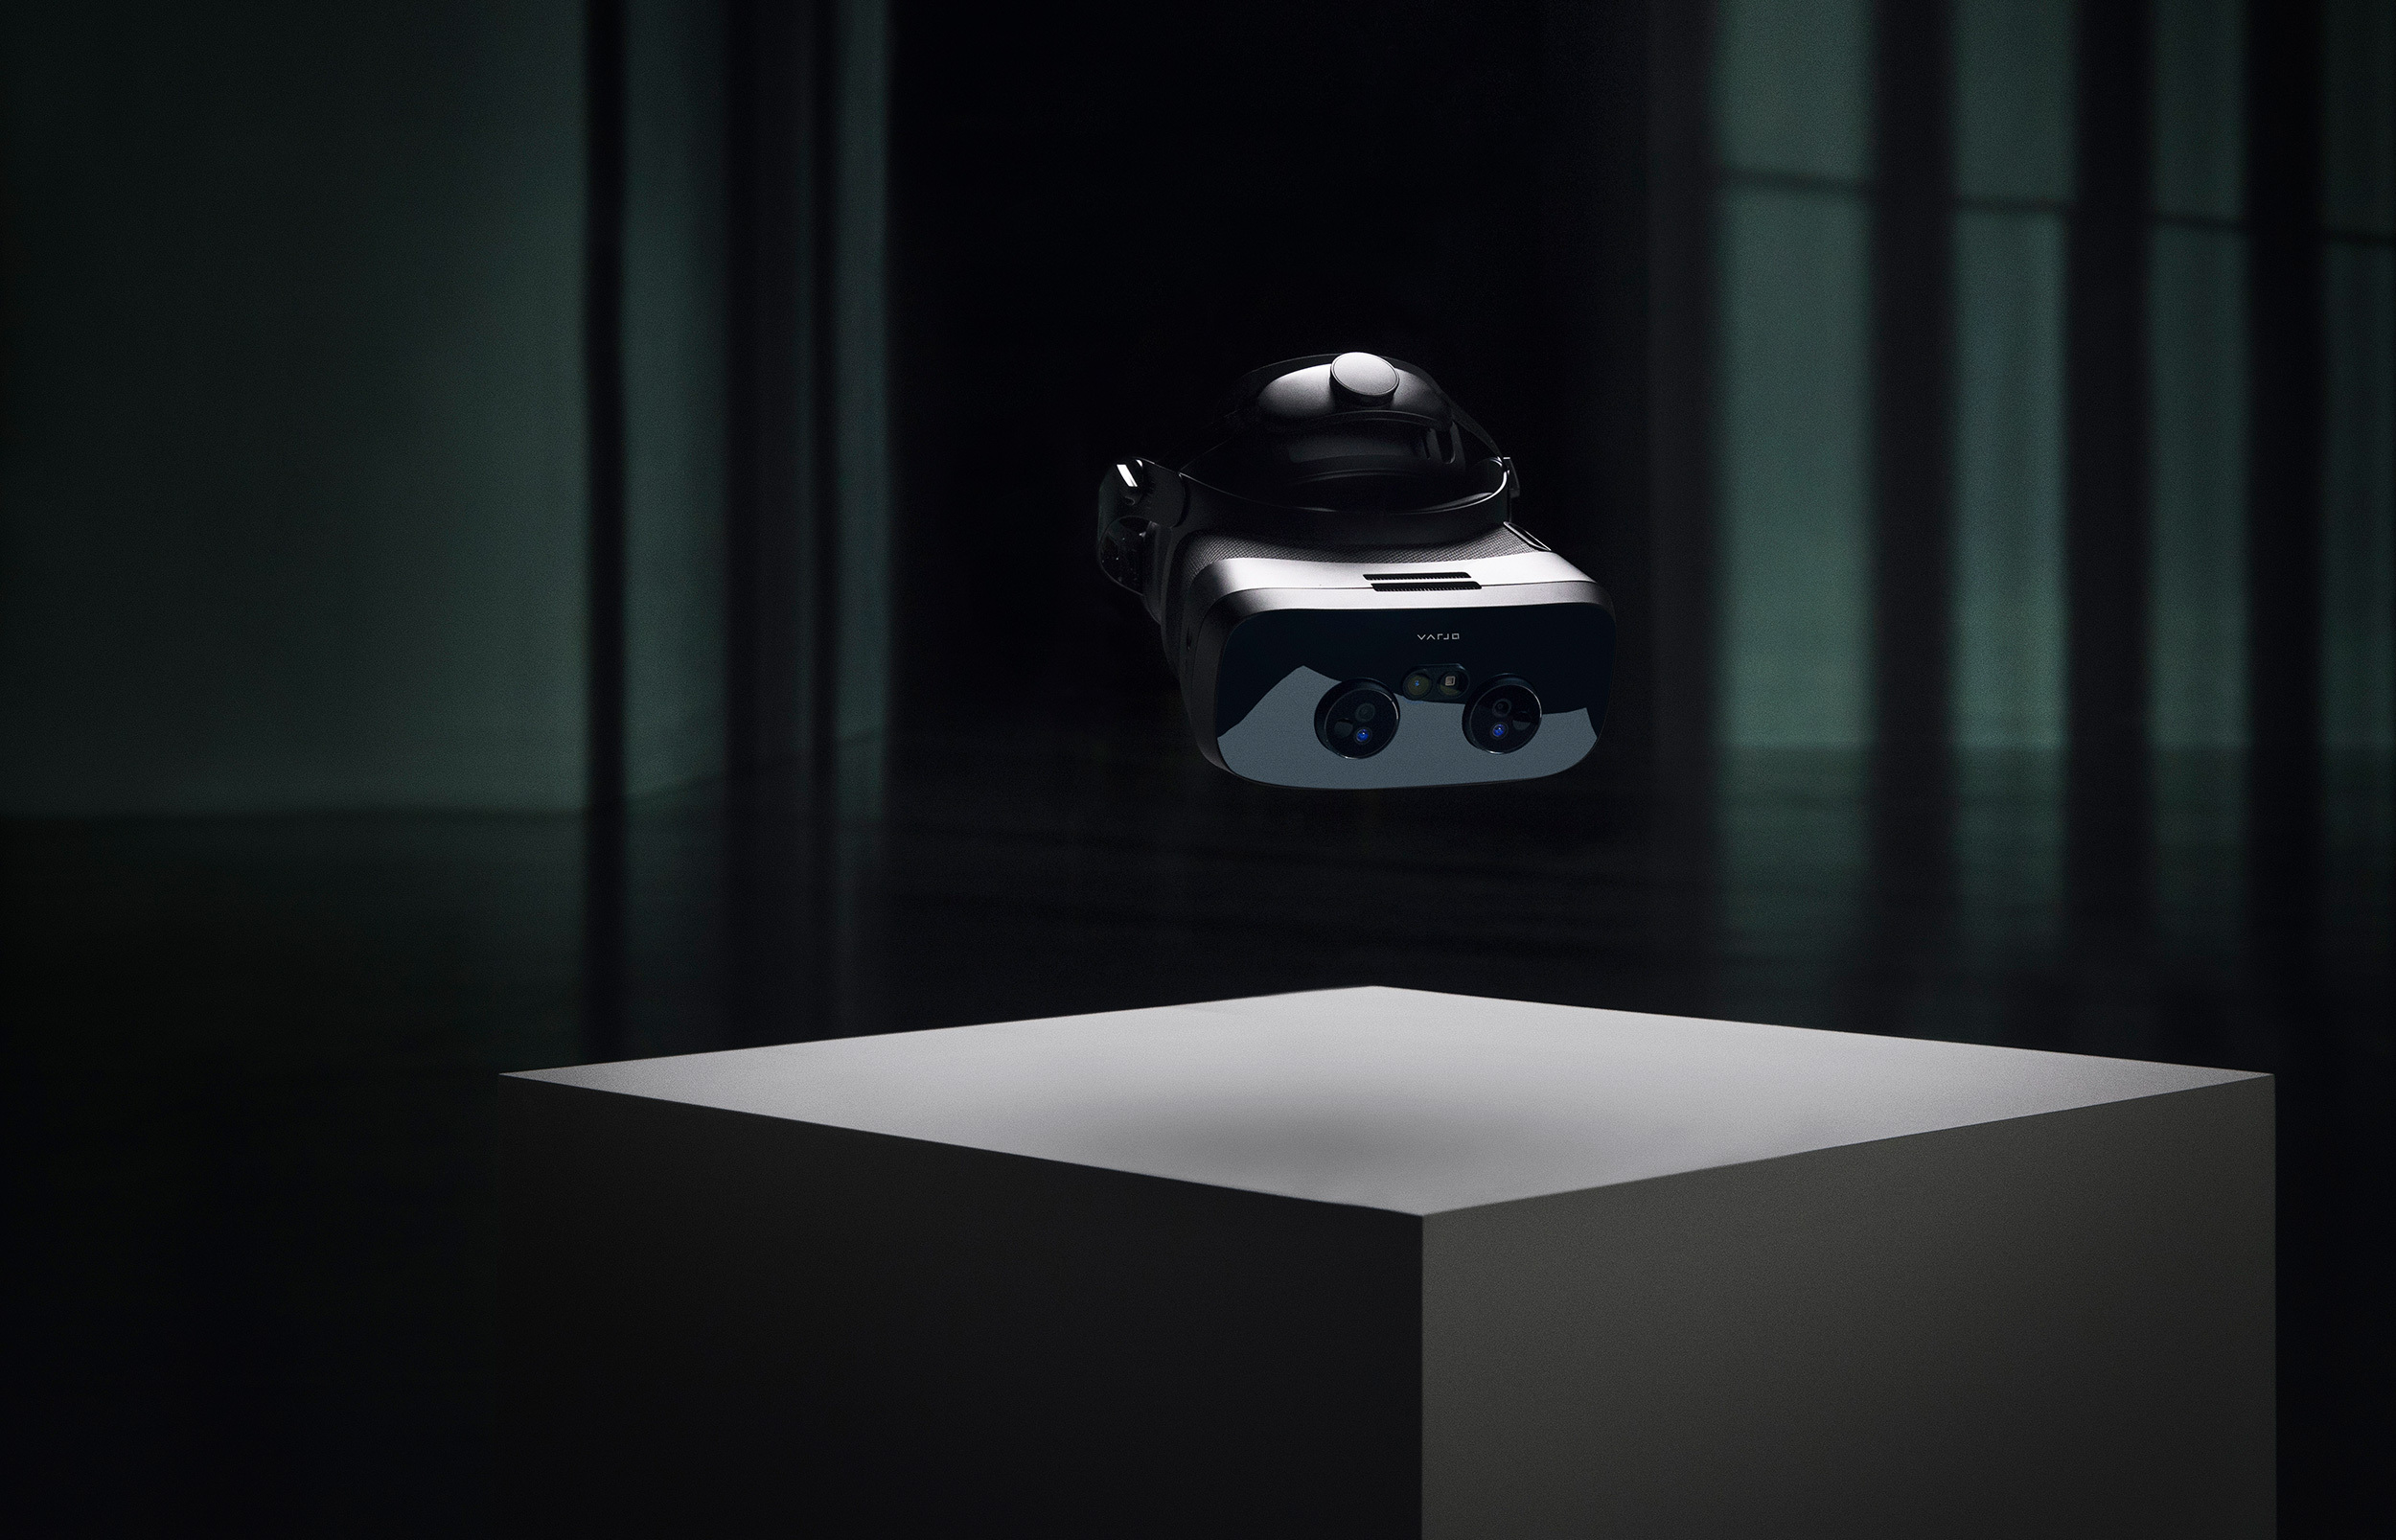 By using video pass-through instead of optical see-through, Varjo's mixed reality device completely and convincingly merges real and virtual, making it the only device to achieve photorealism in augmented and mixed reality.